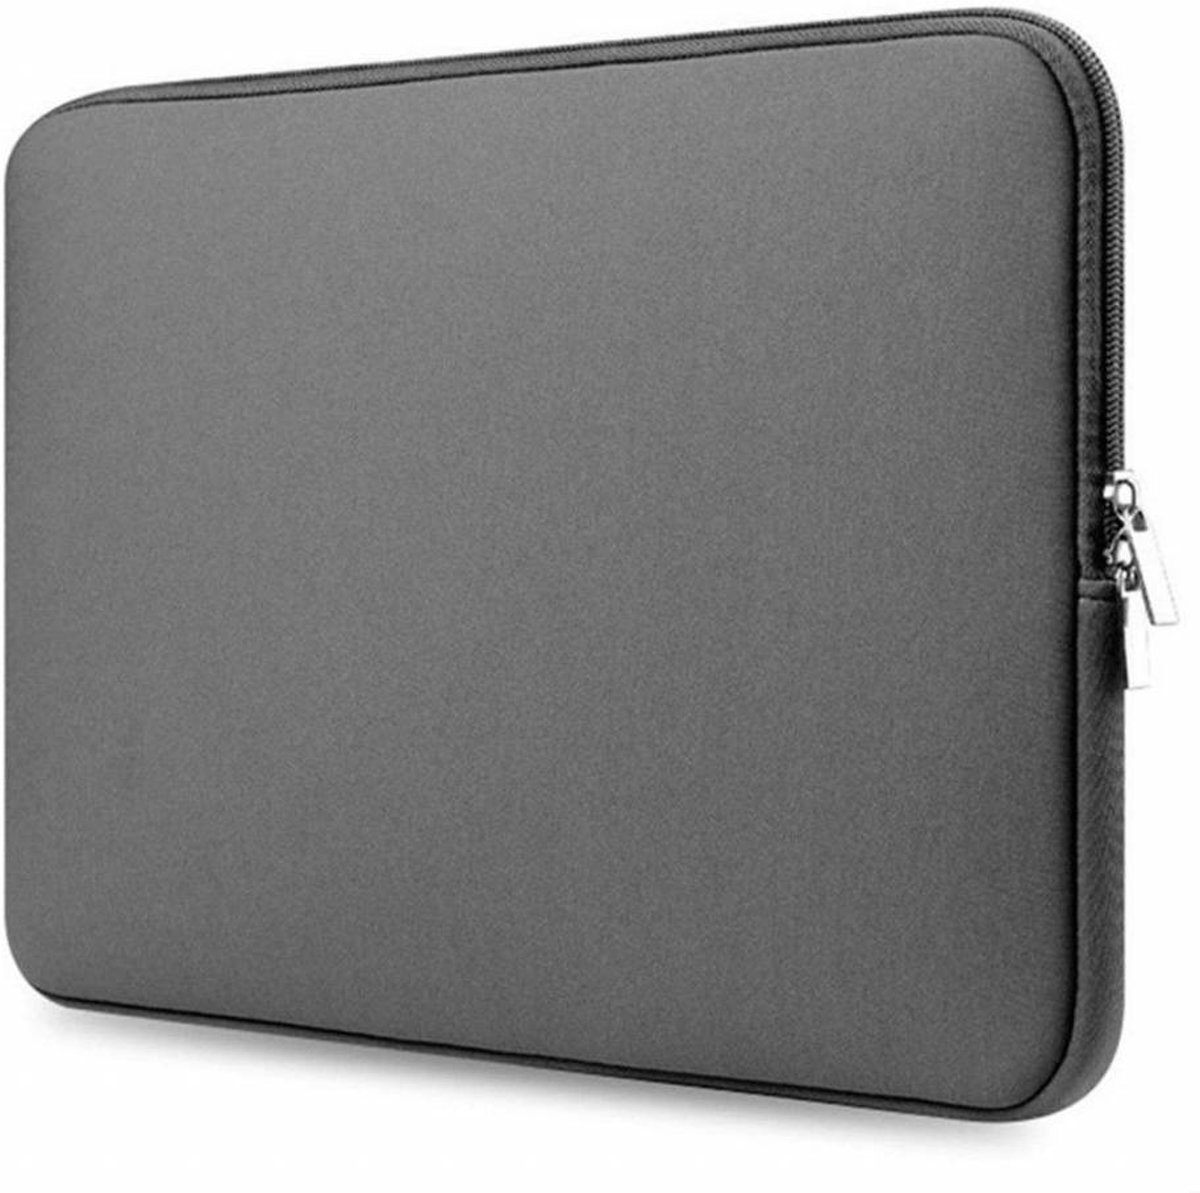 Acer Chomebook Sleeve - 14 inch - Grijs